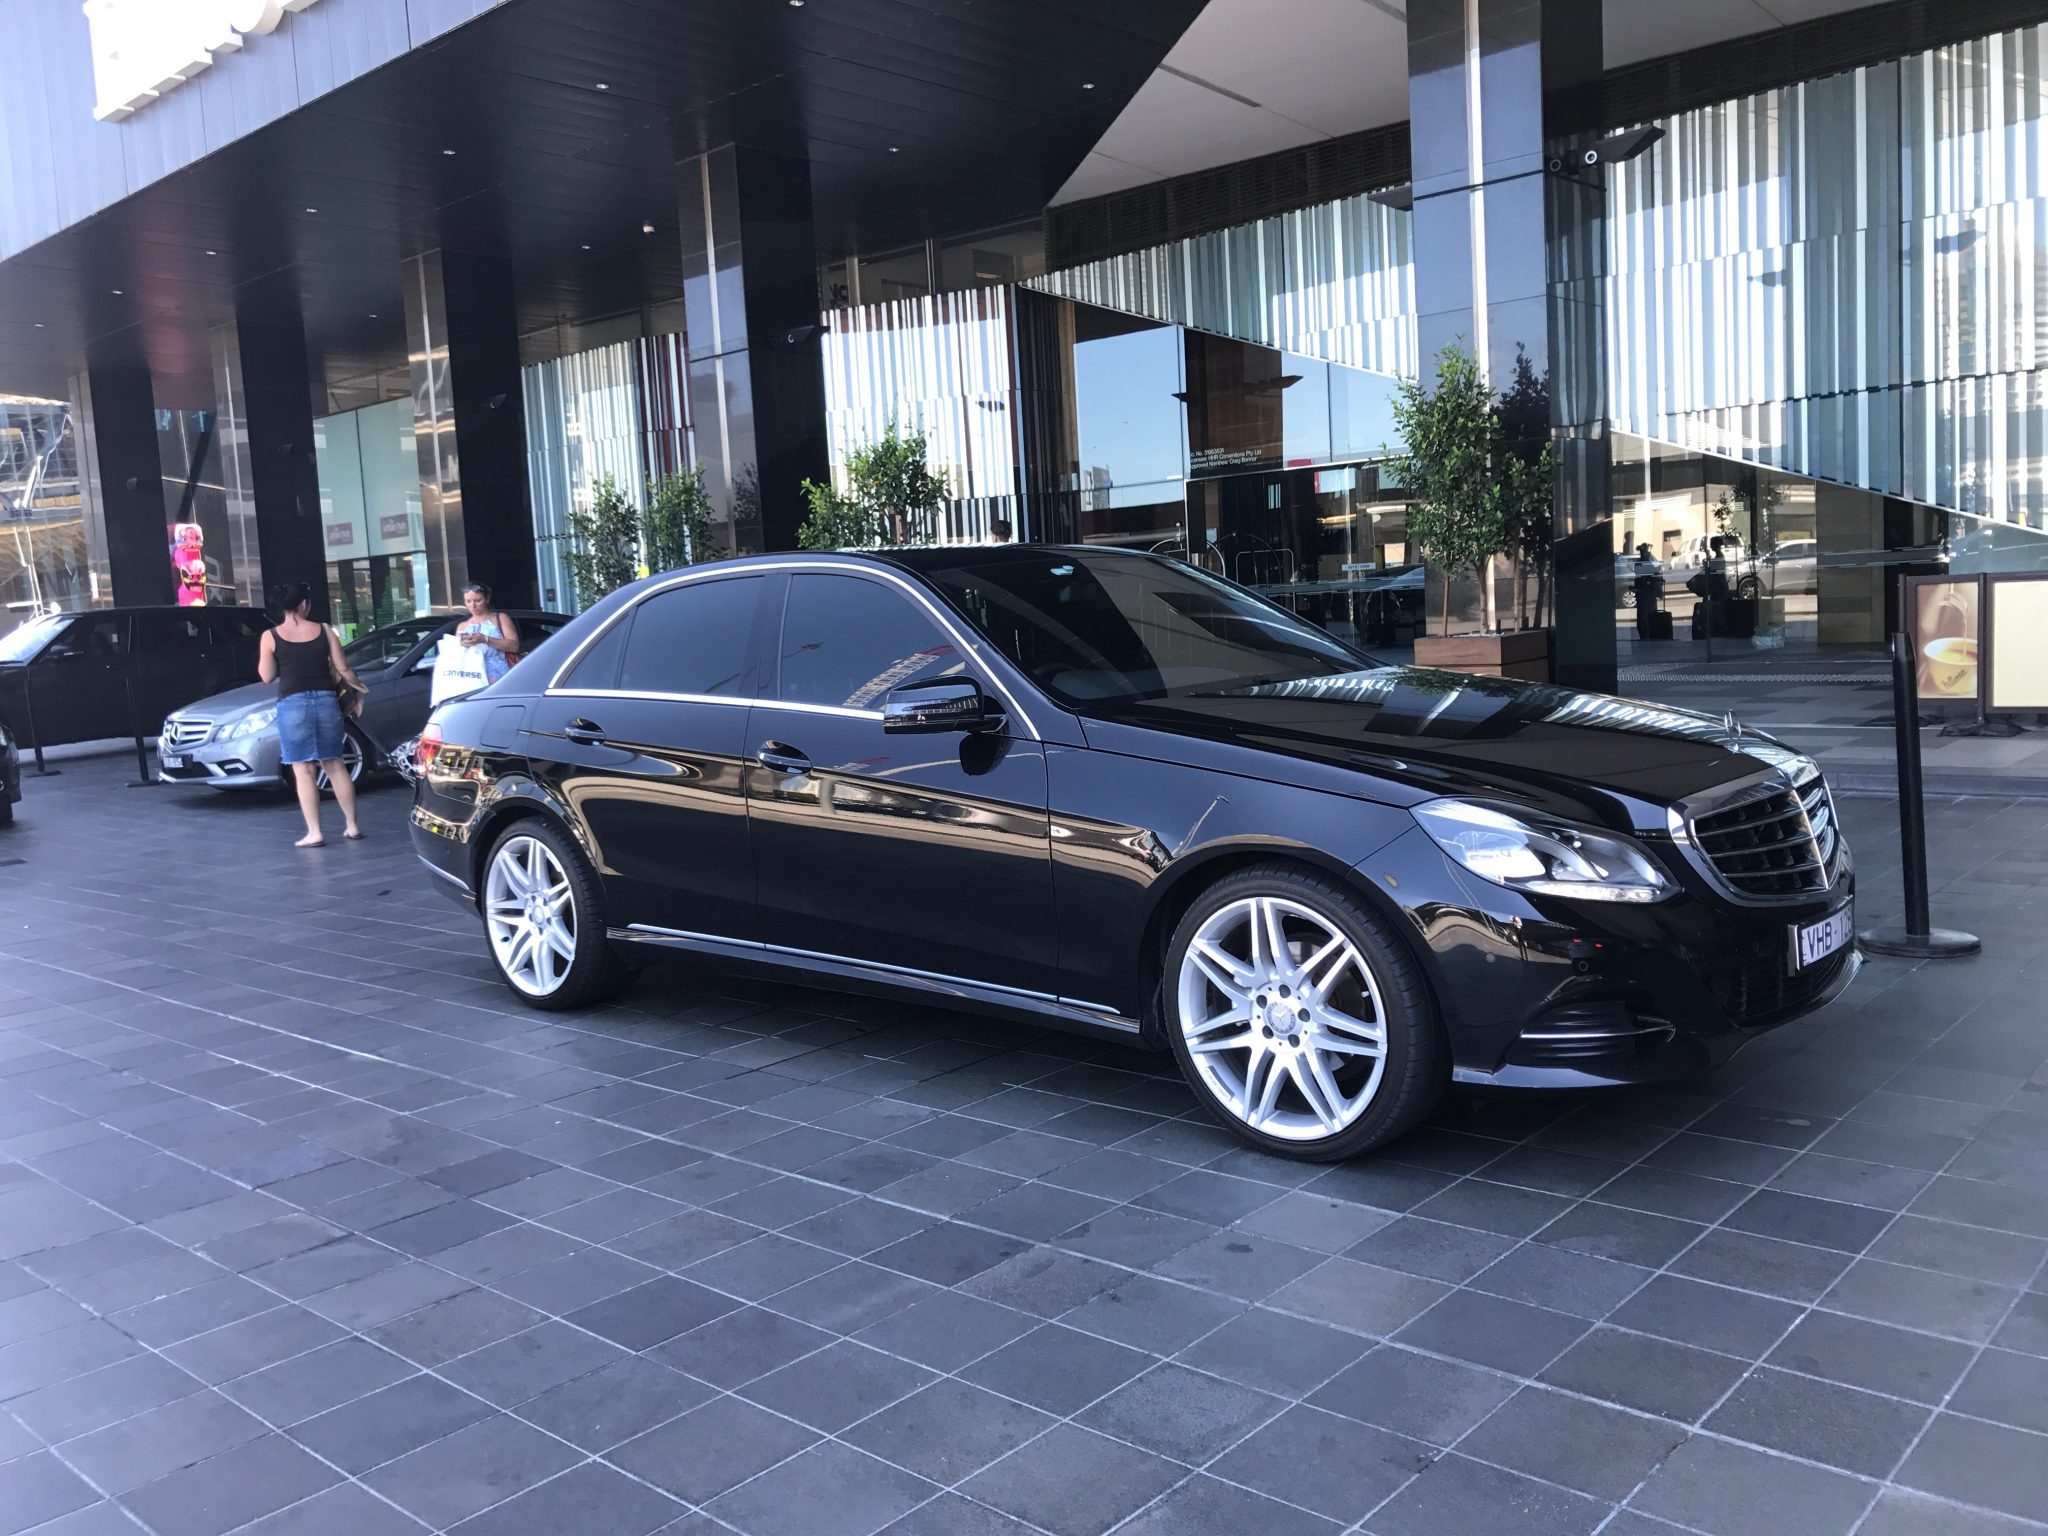 chauffeur car from Melbourne airport to hotel transfers Melbourne